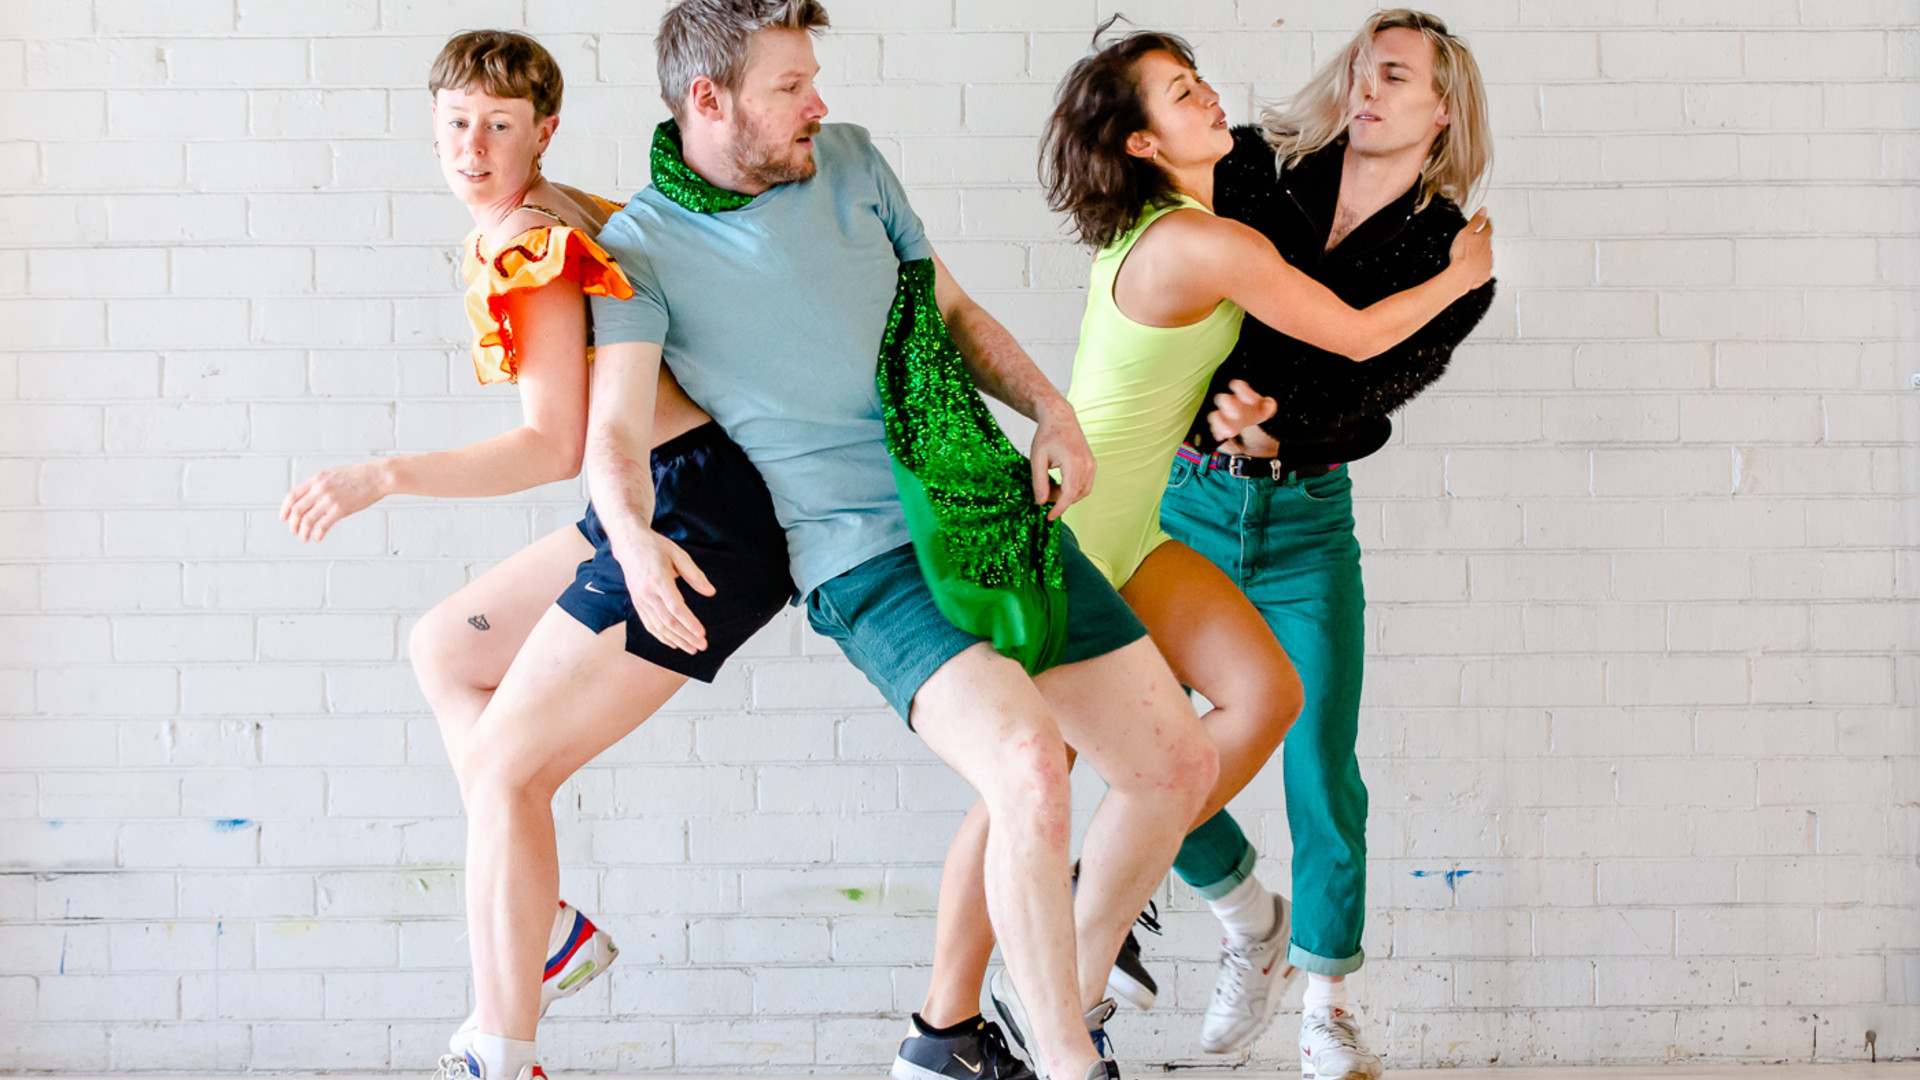 4 dancers in brightly coloured clothing lean on and move in close proximity to each other in front of a white brick wall